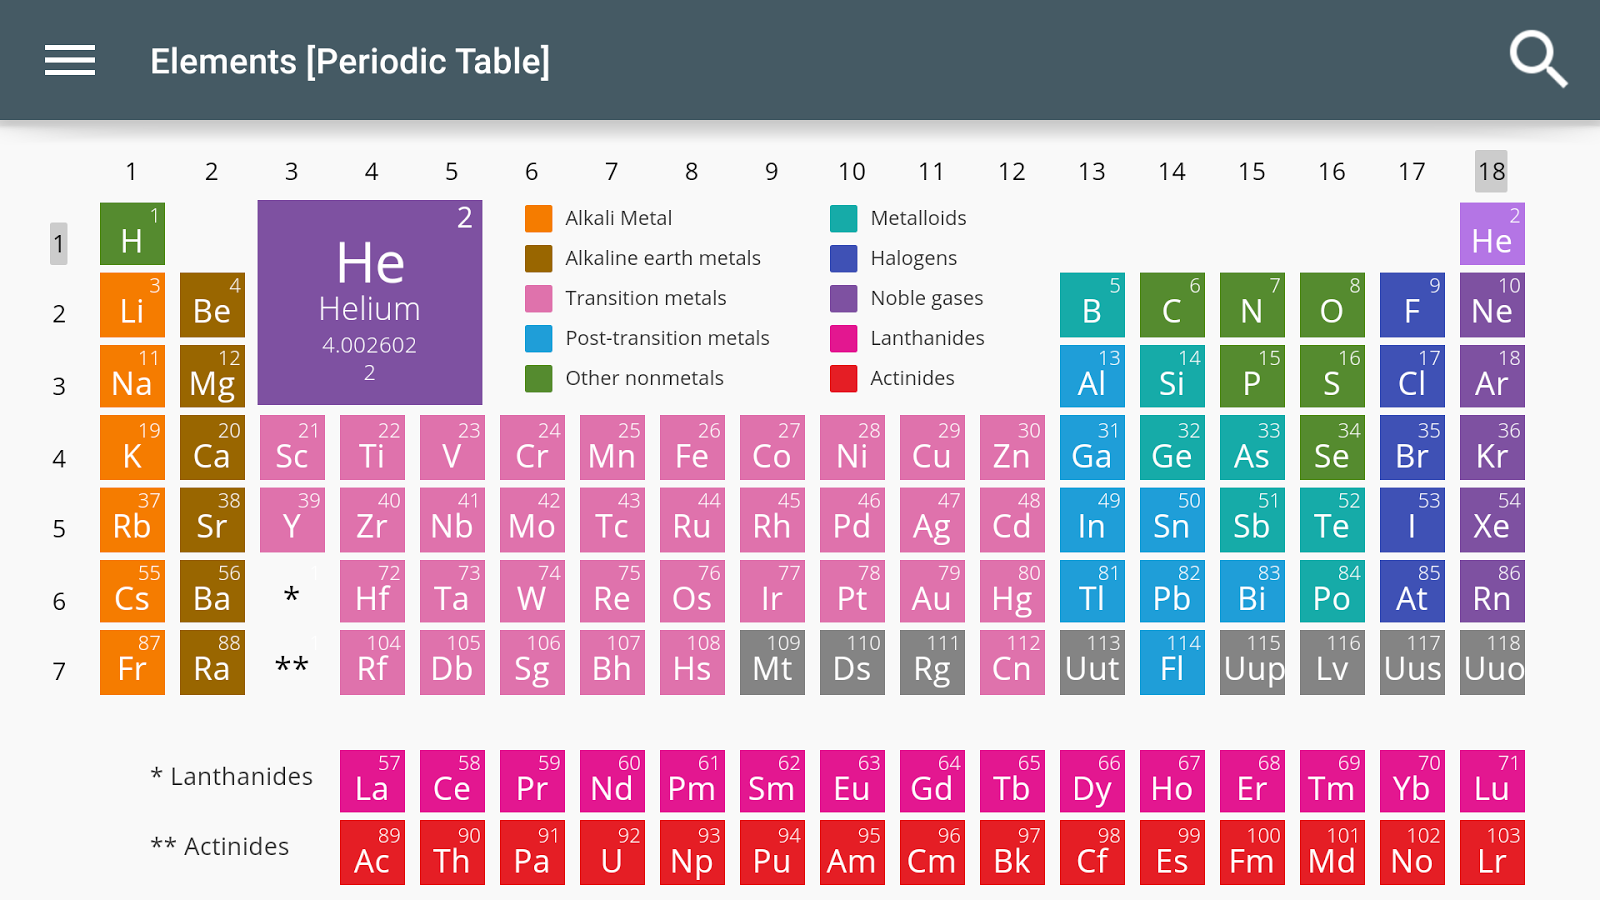 Elements periodic table 10 apk download android education apps elements periodic table 10 screenshot 2 gamestrikefo Gallery